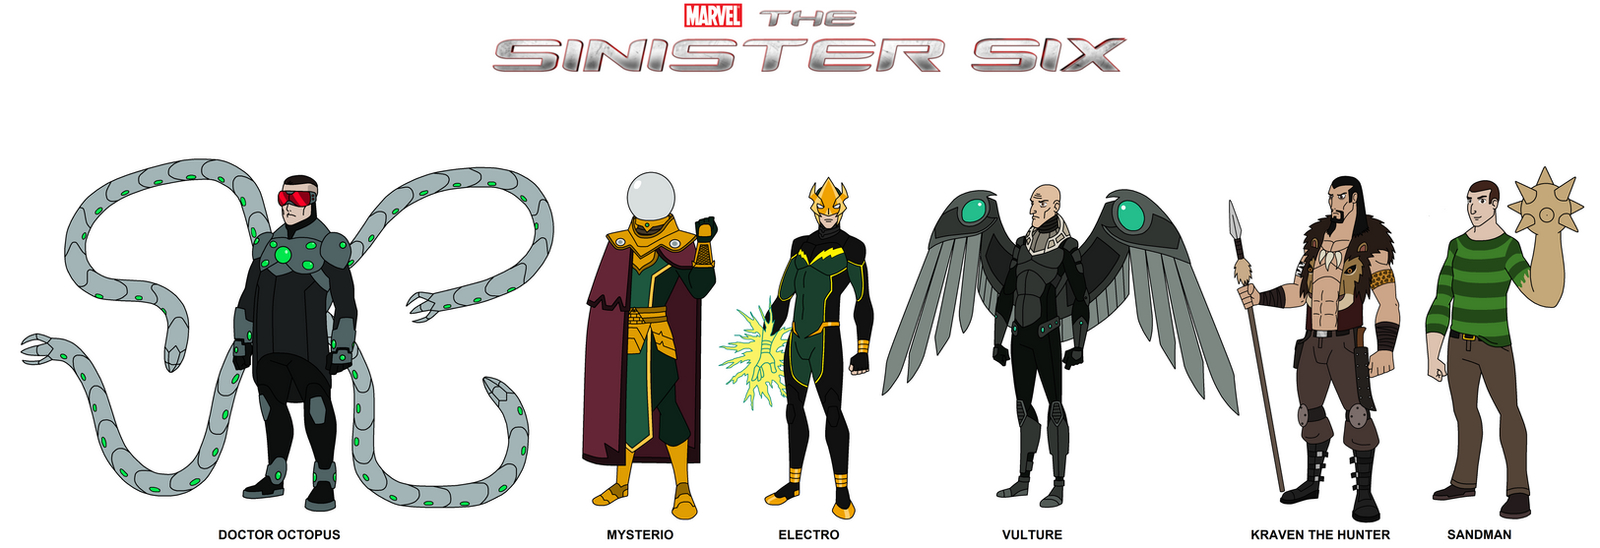 Marvel - The Sinister Six 2017 by HewyToonmore on DeviantArt